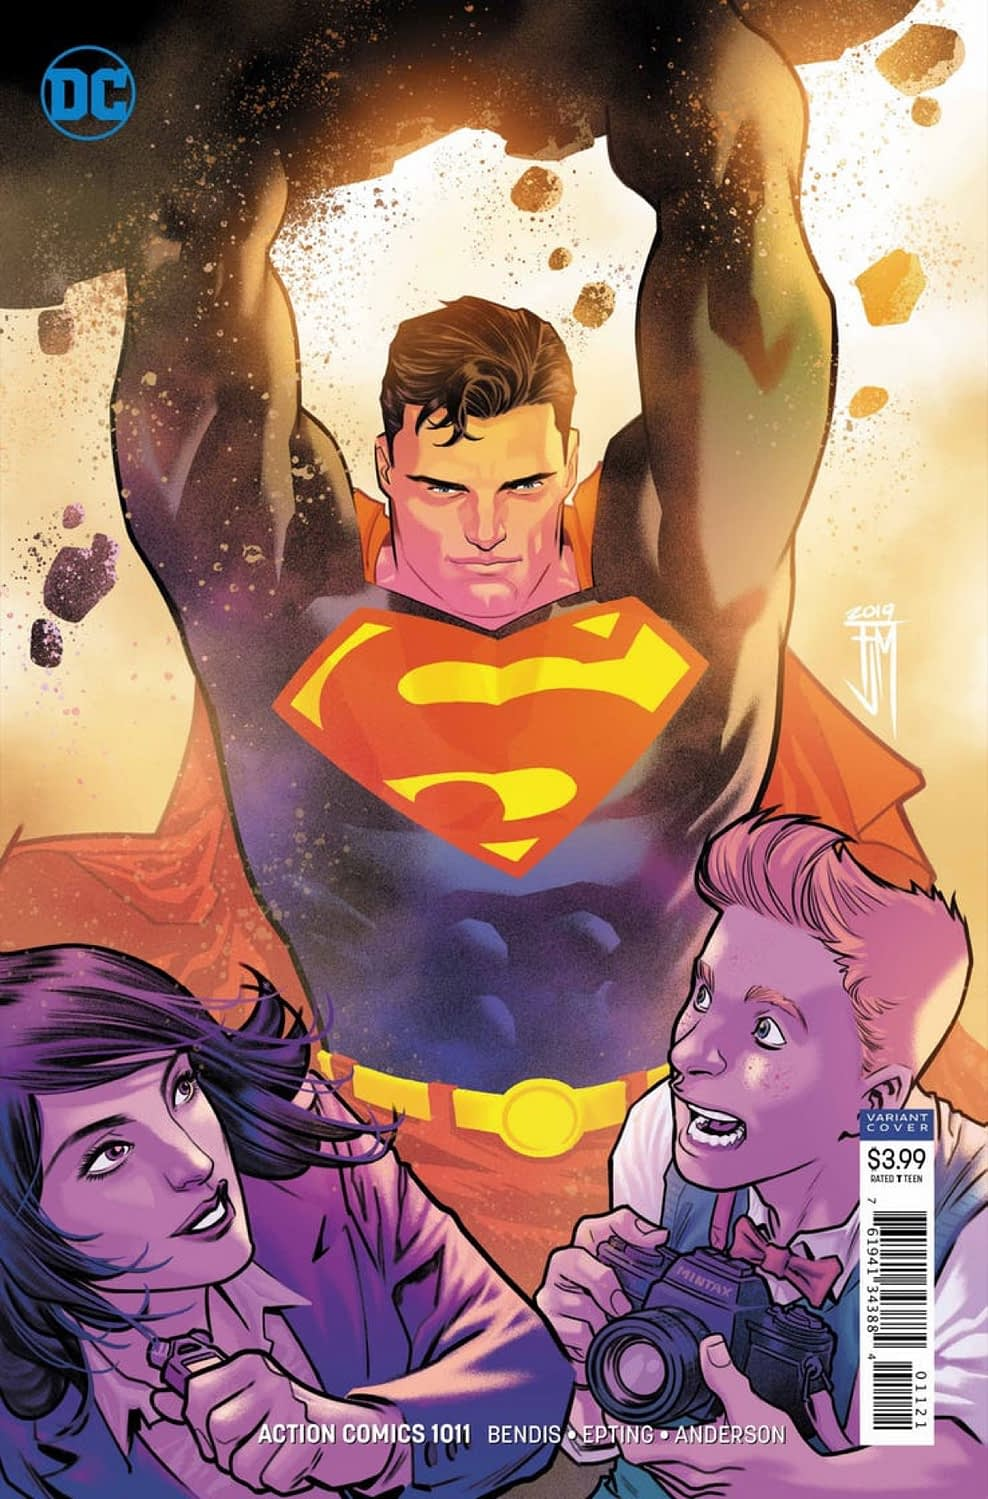 Manhunter Debuts, Beats Up Cops in Action Comics #1011 (Preview)